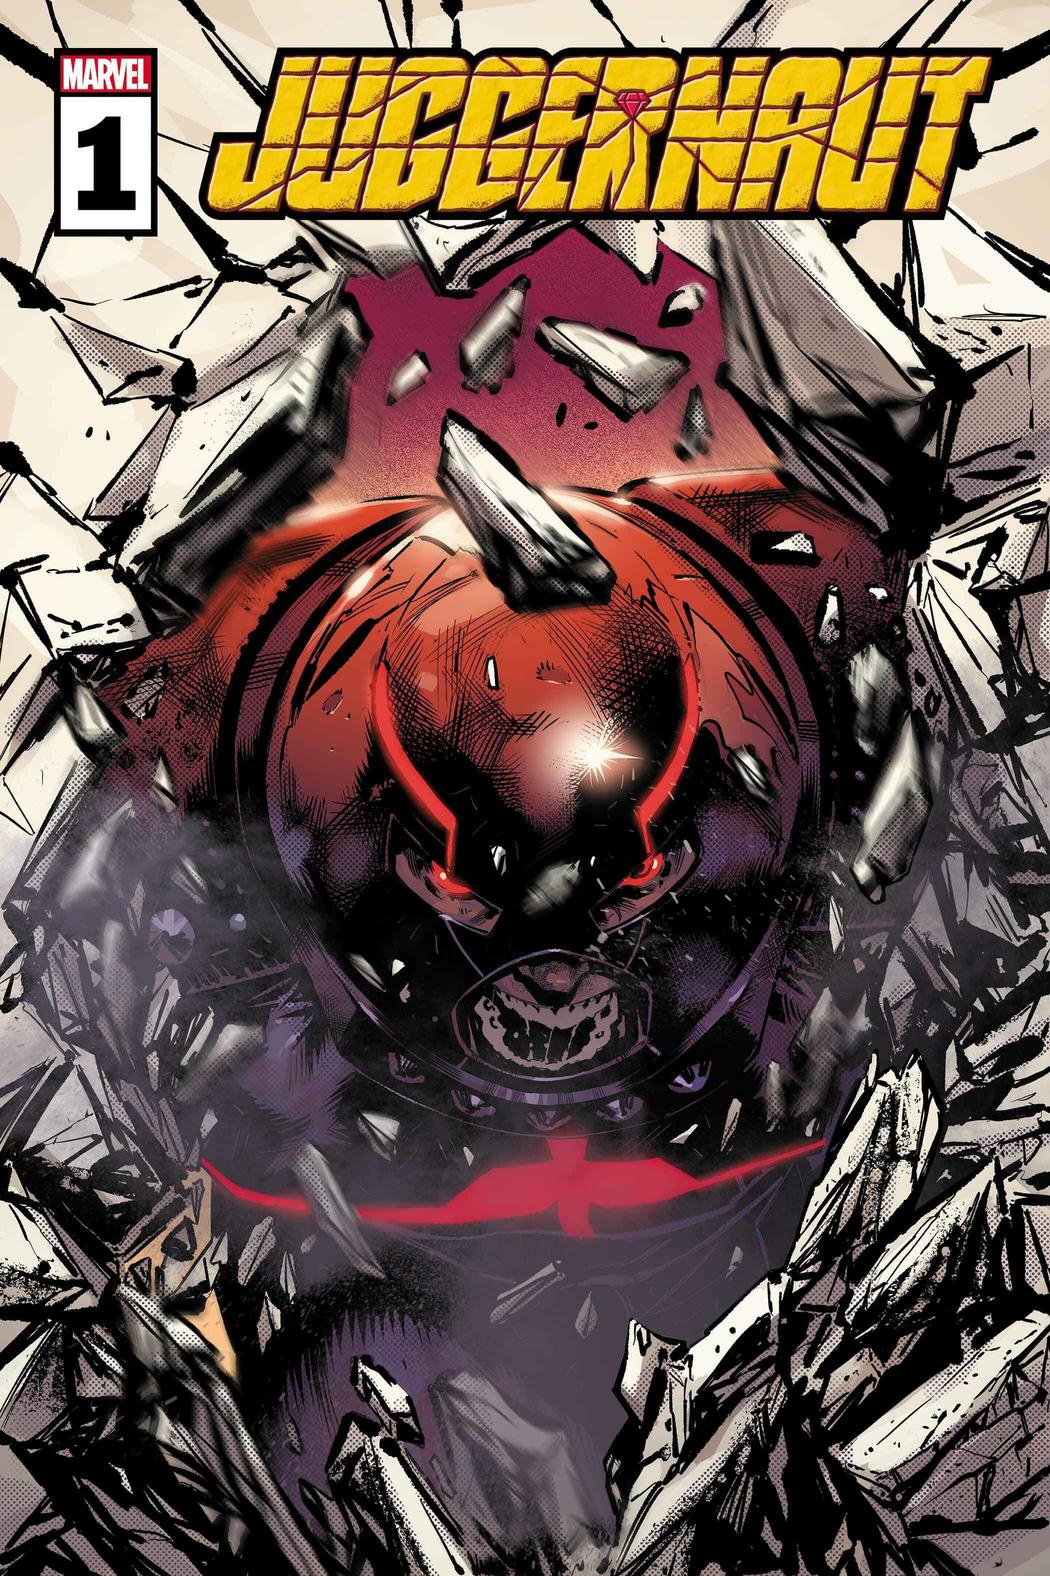 JUGGERNAUT #1 WRITTEN BY FABIAN NICIEZA, ART BY RON GARNEY, COVER BY GEOFF SHAW